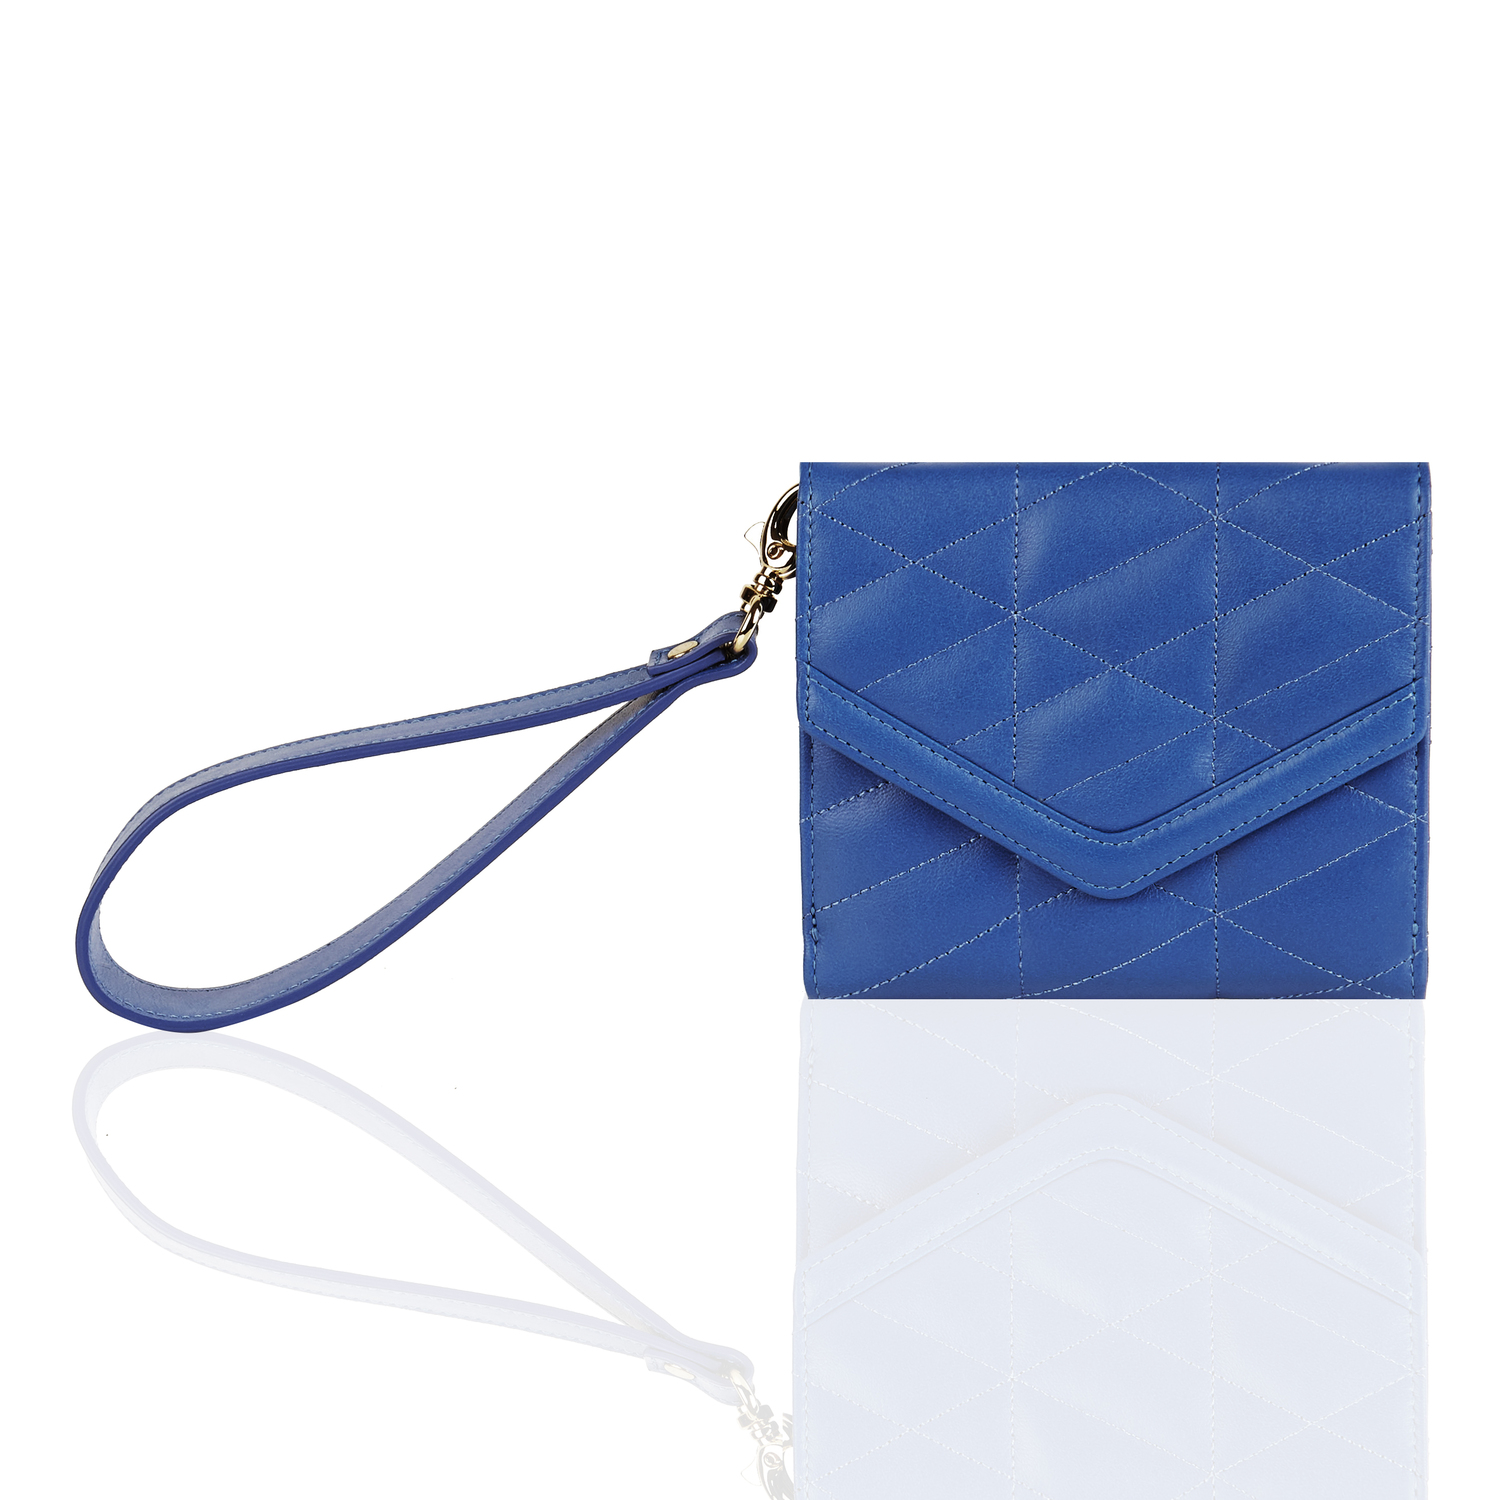 LUXURIOUS LAPIS - $195.00